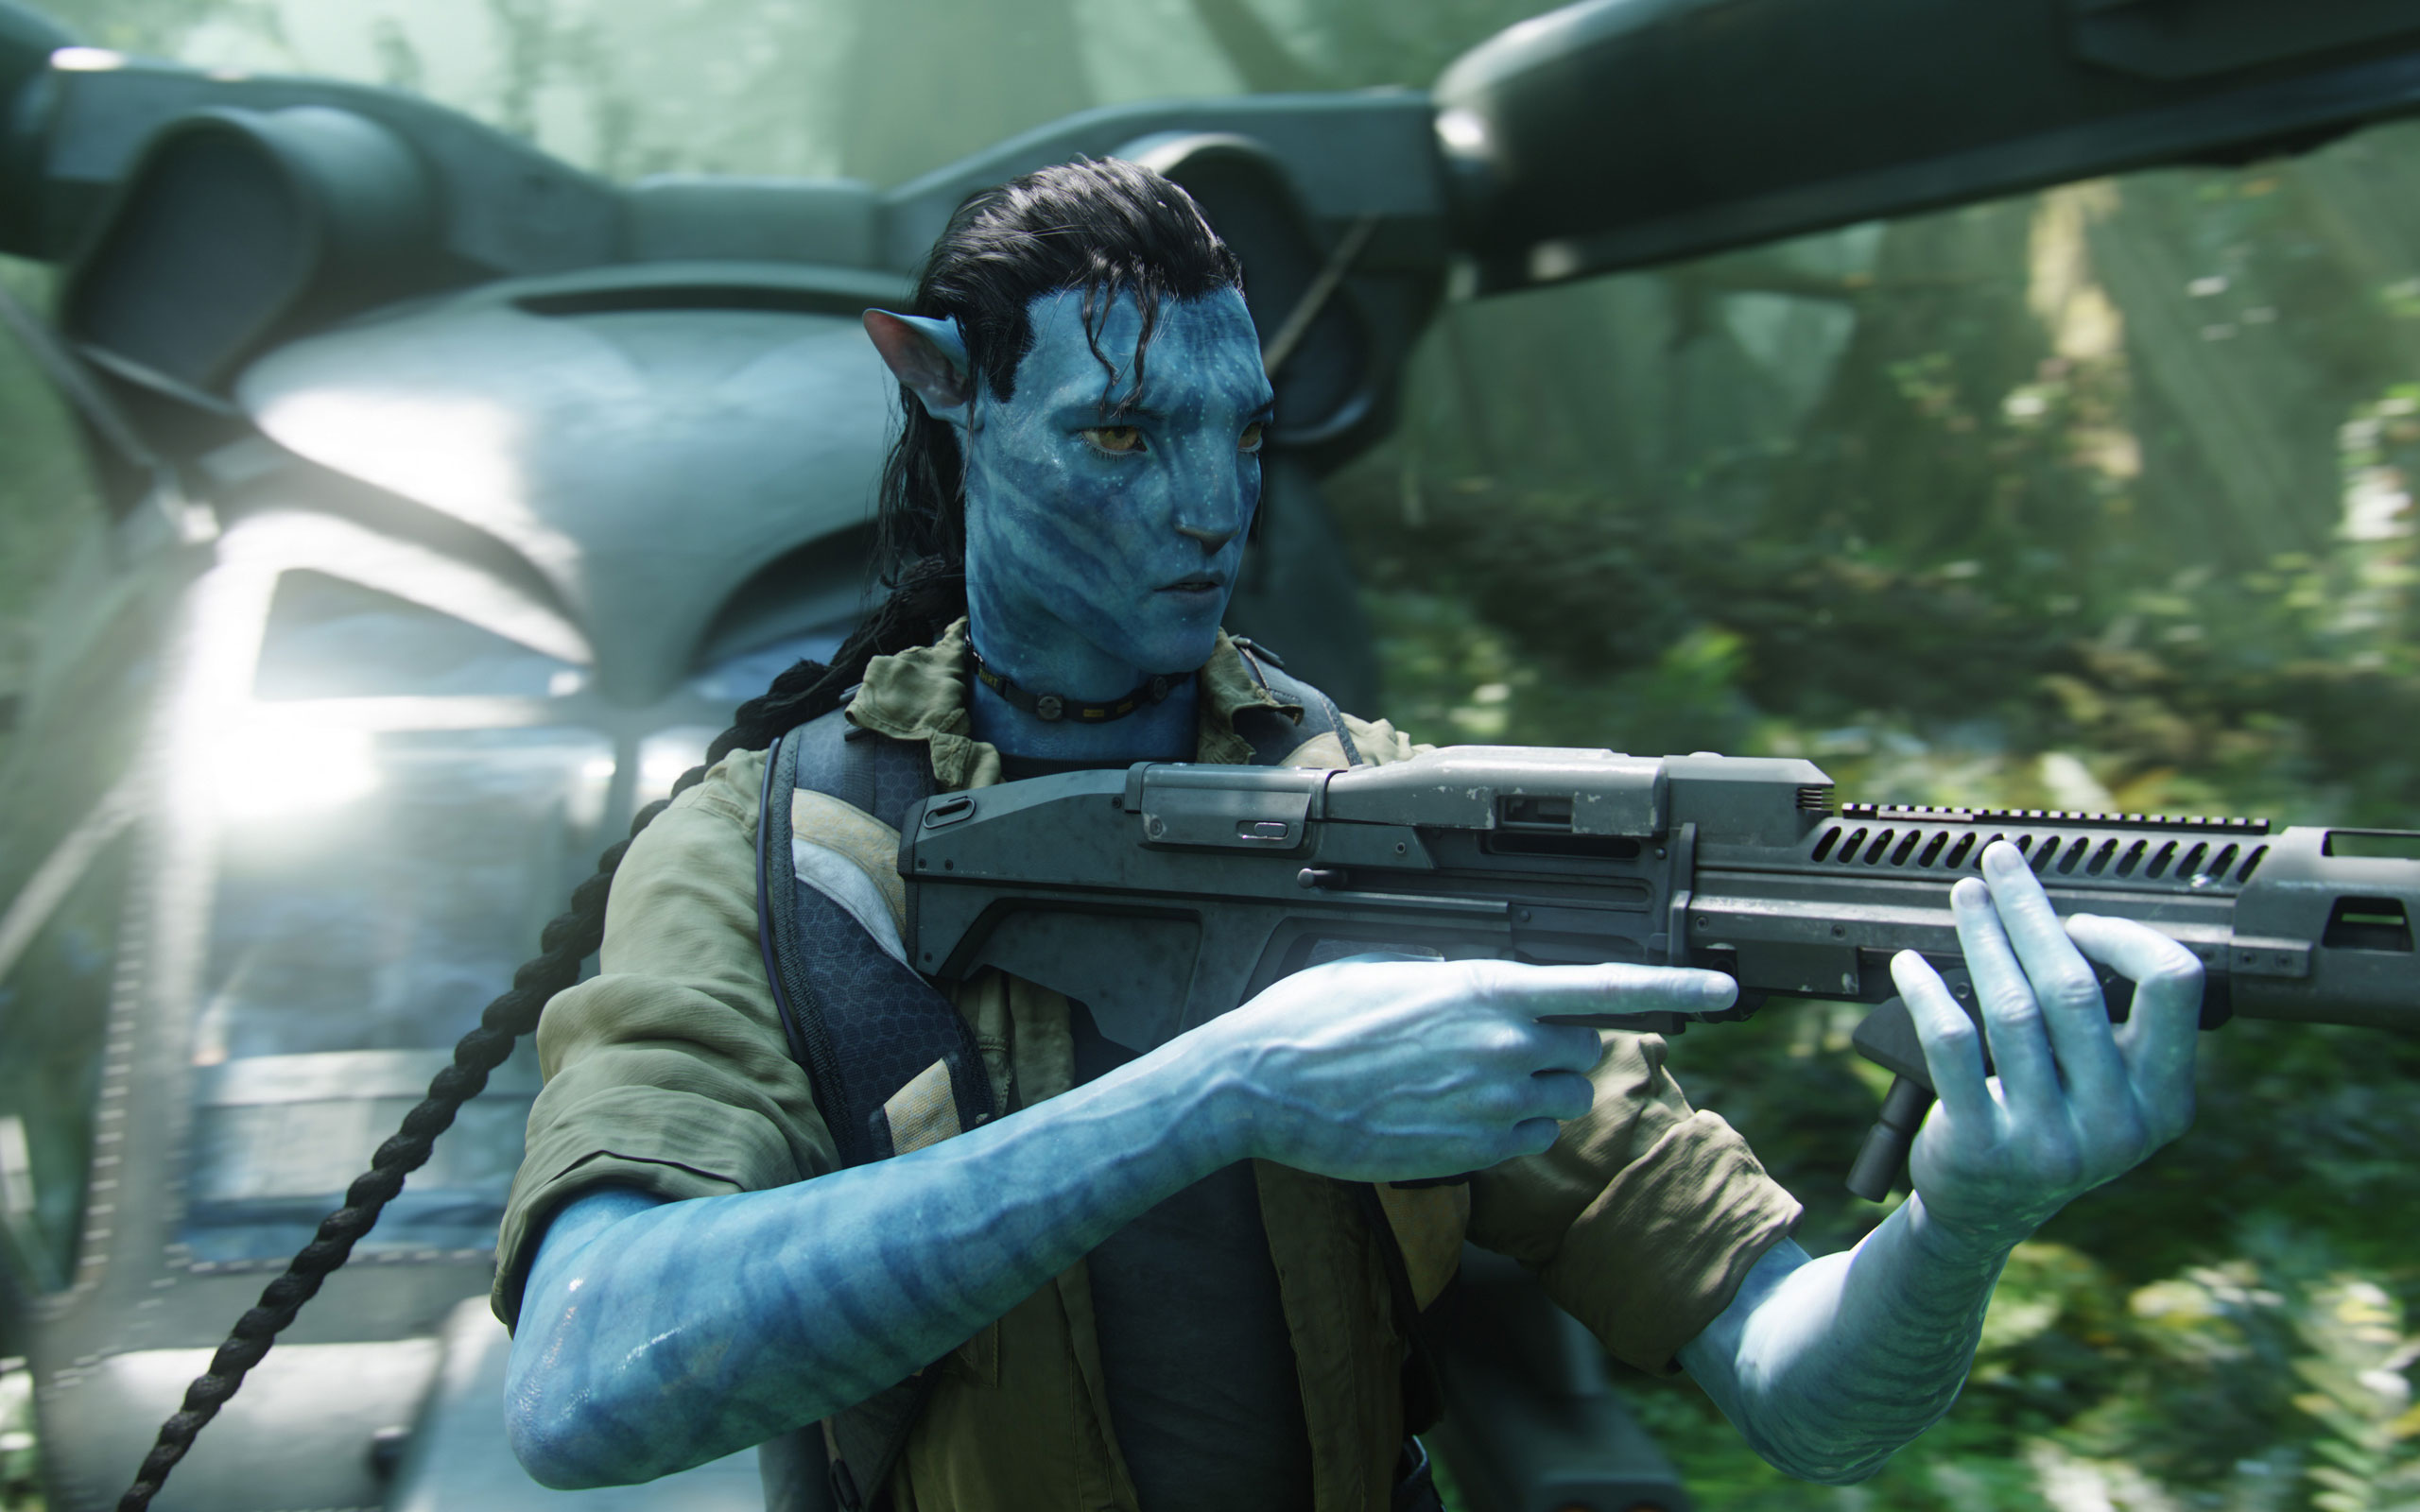 Jake With Gun in Avatar 315.69 Kb